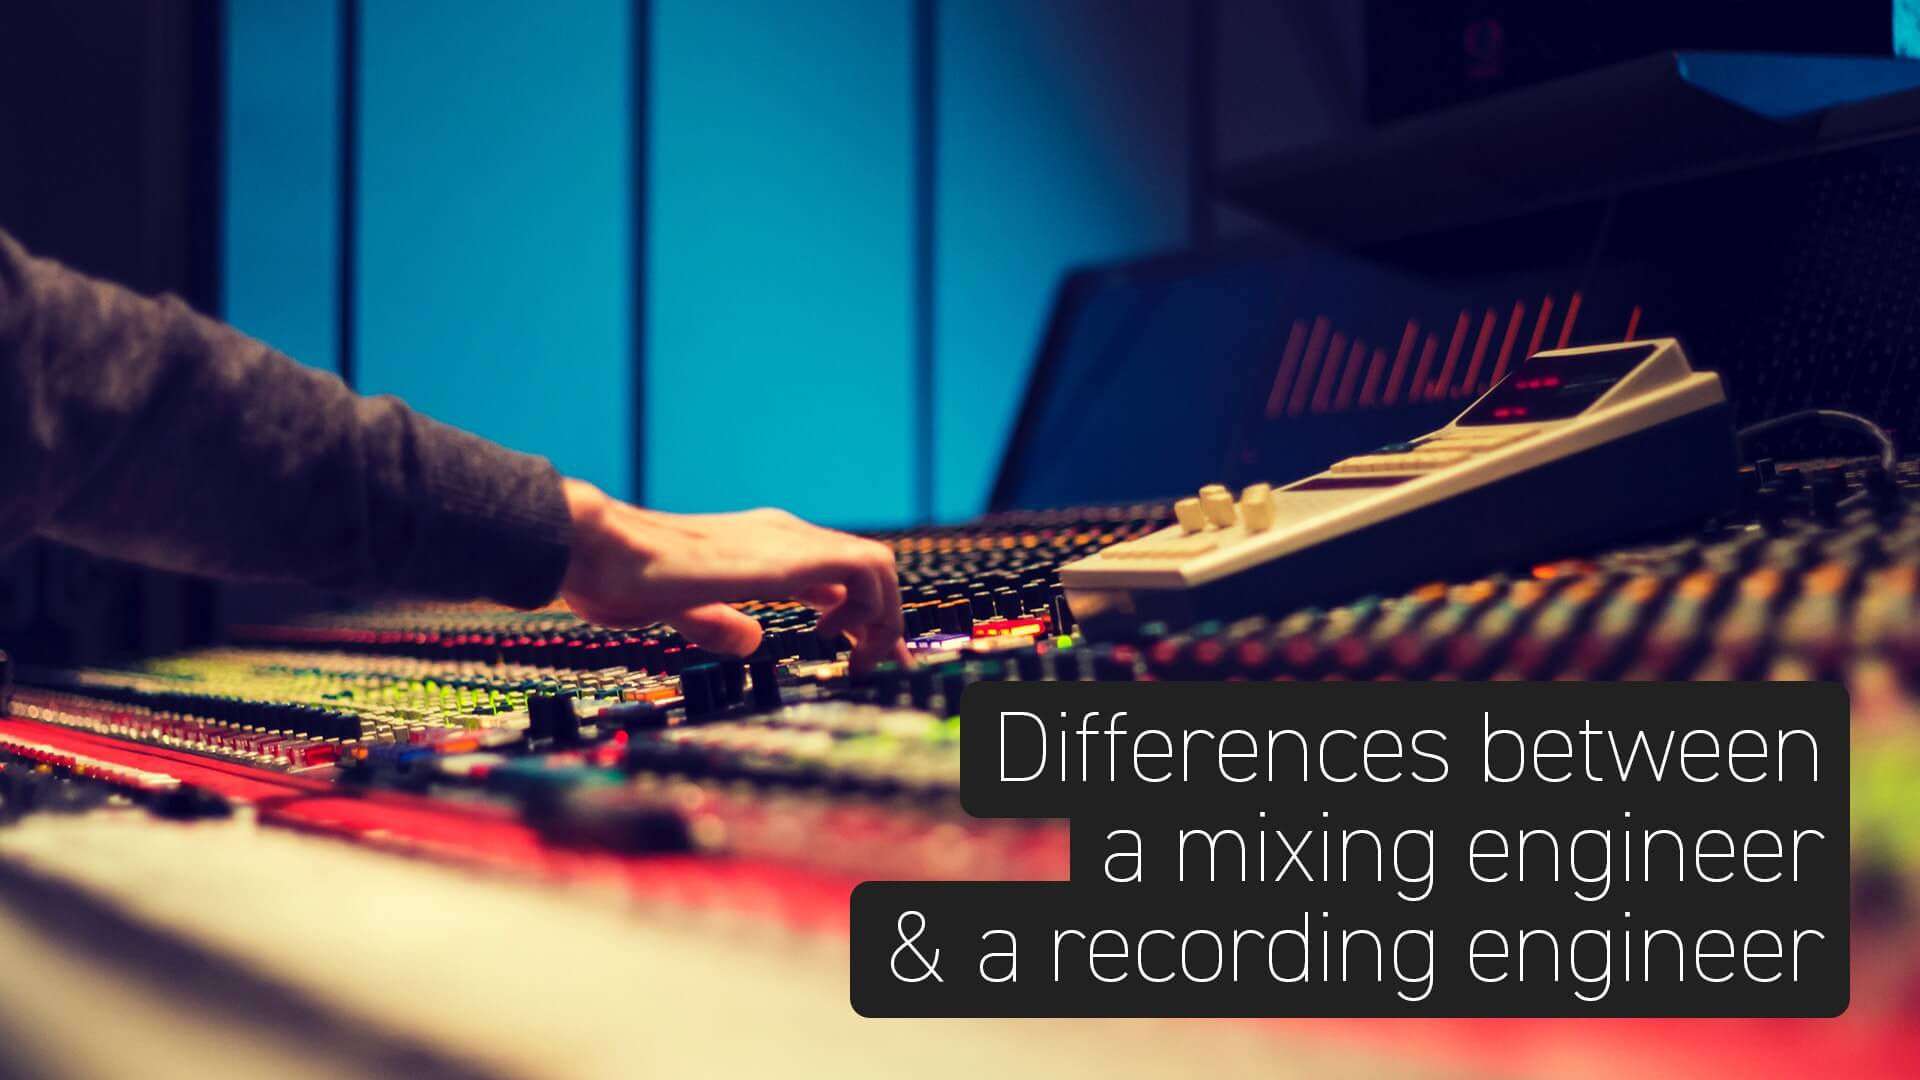 The difference between a mixing  engineer and a recording engineer